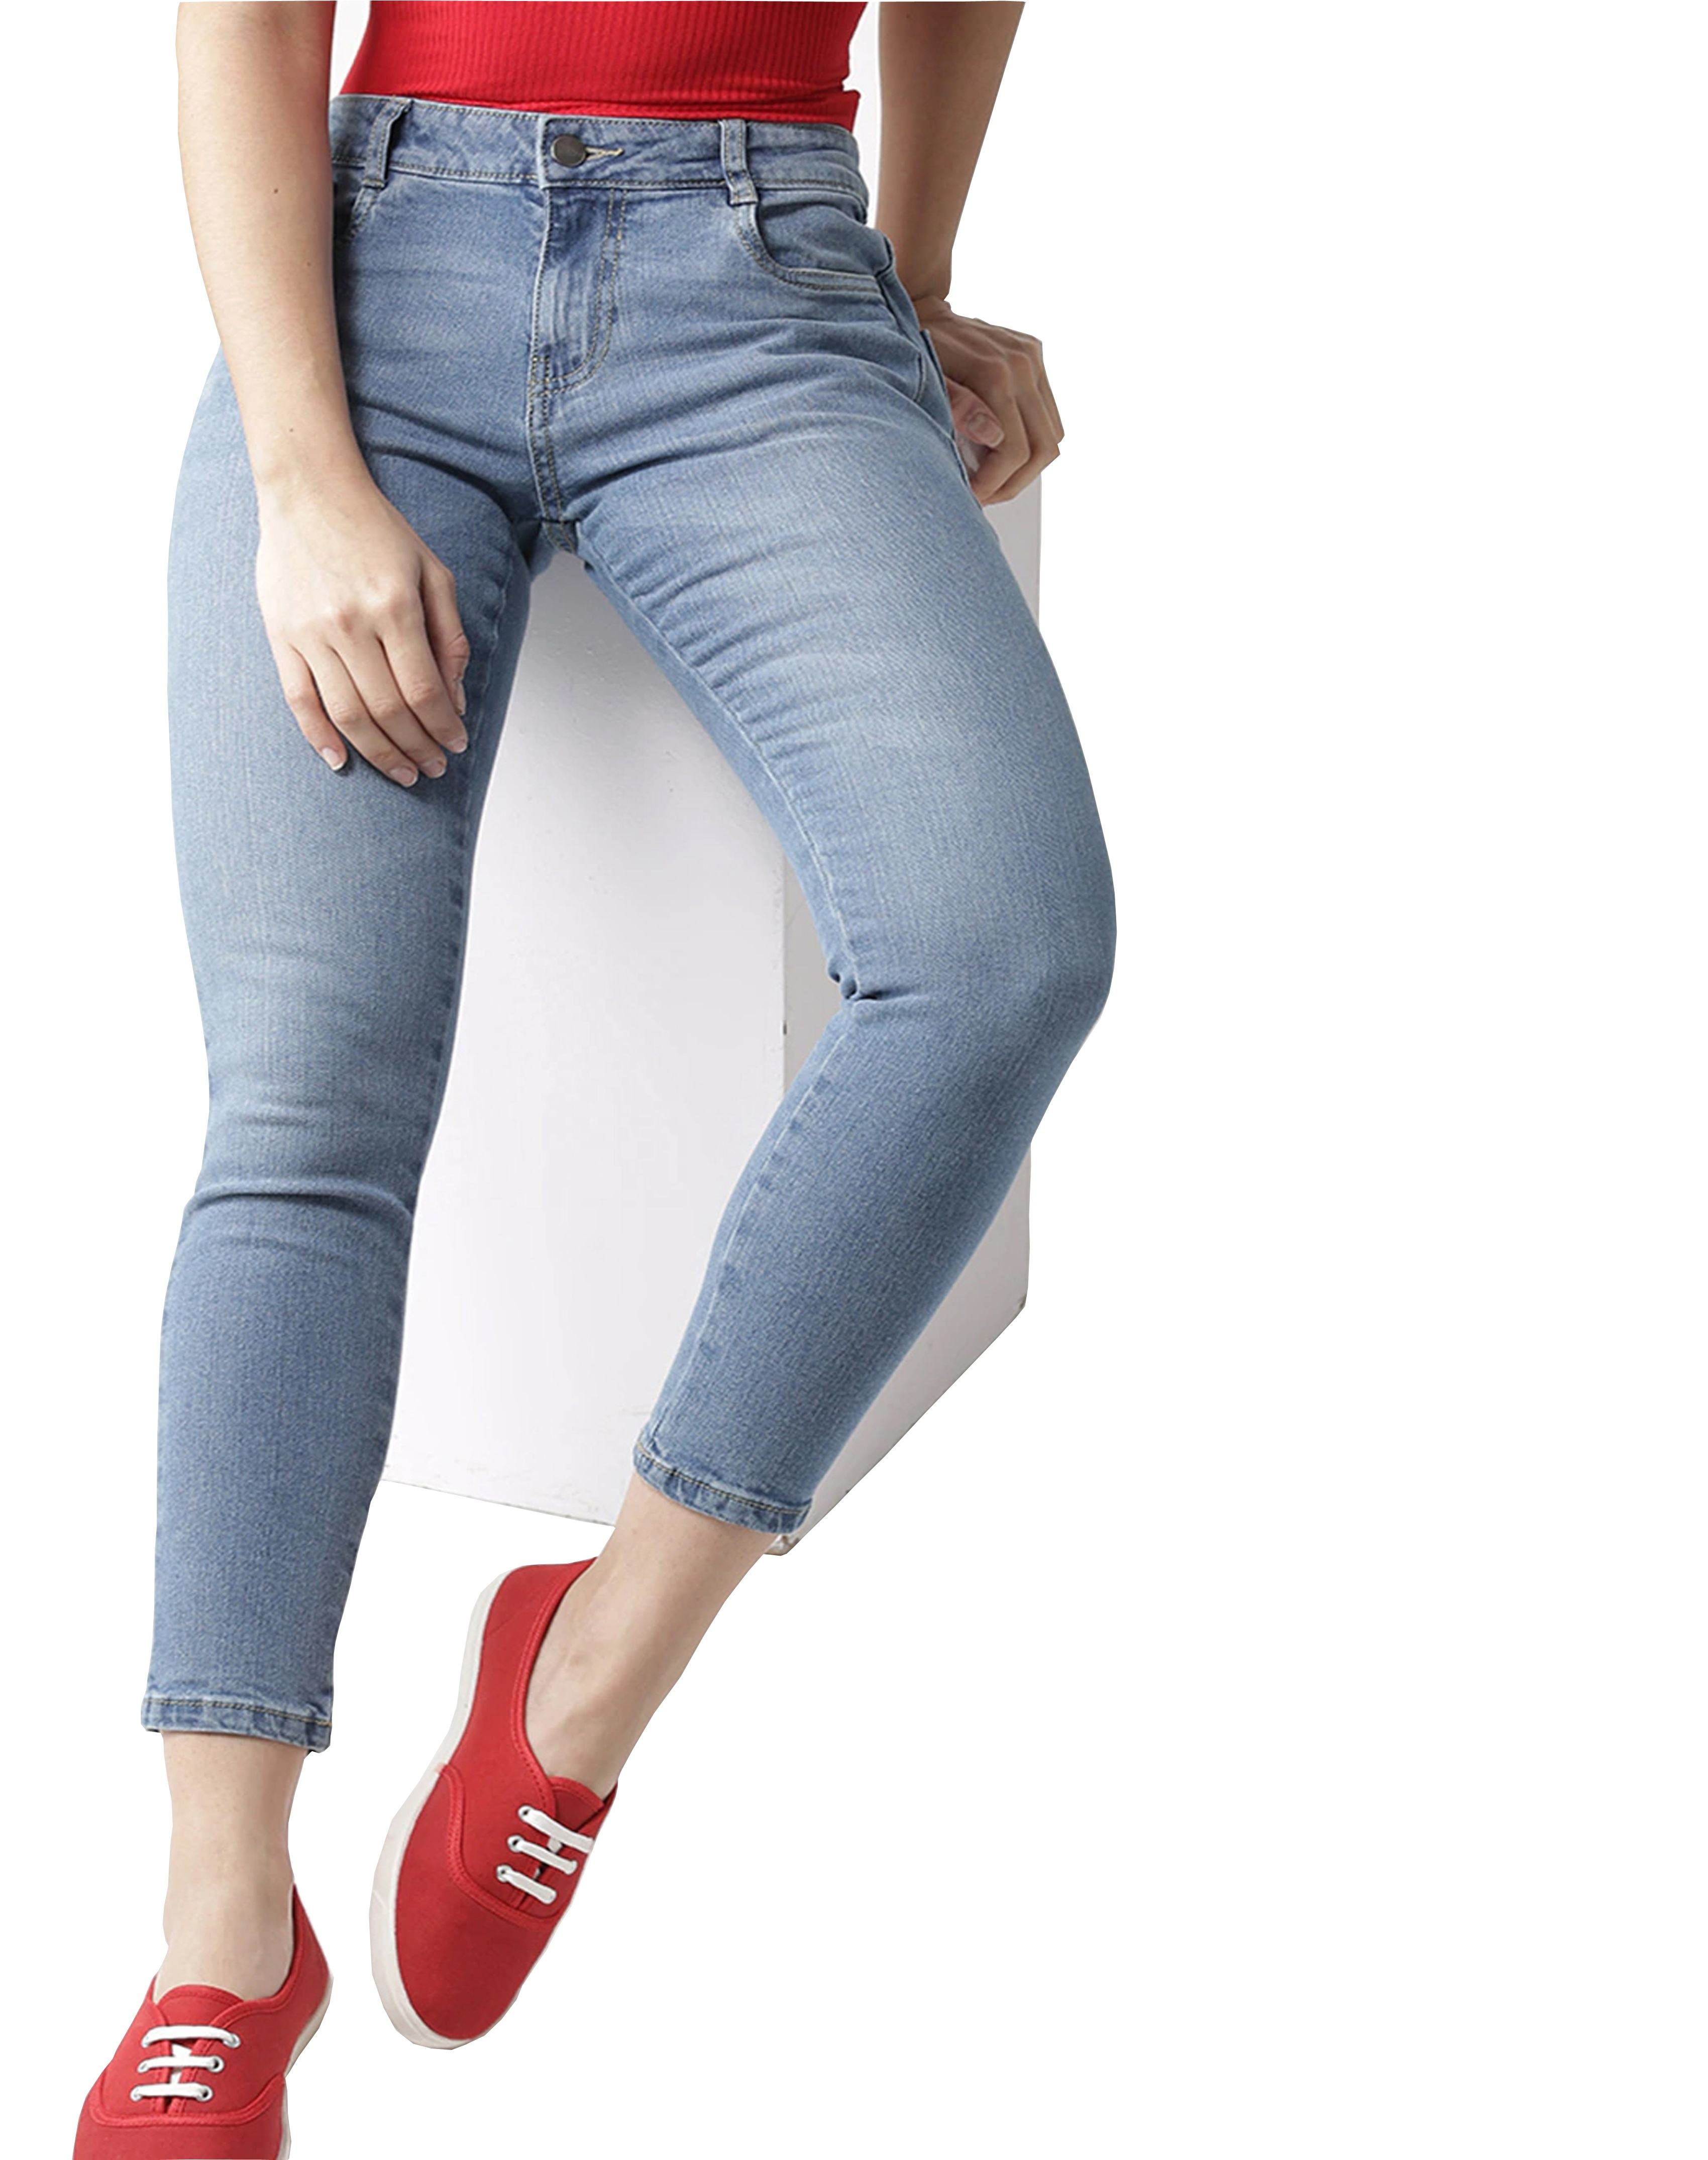 Fashion new hot tight sexy stretch high rise pencil hole denim pant women's jeans